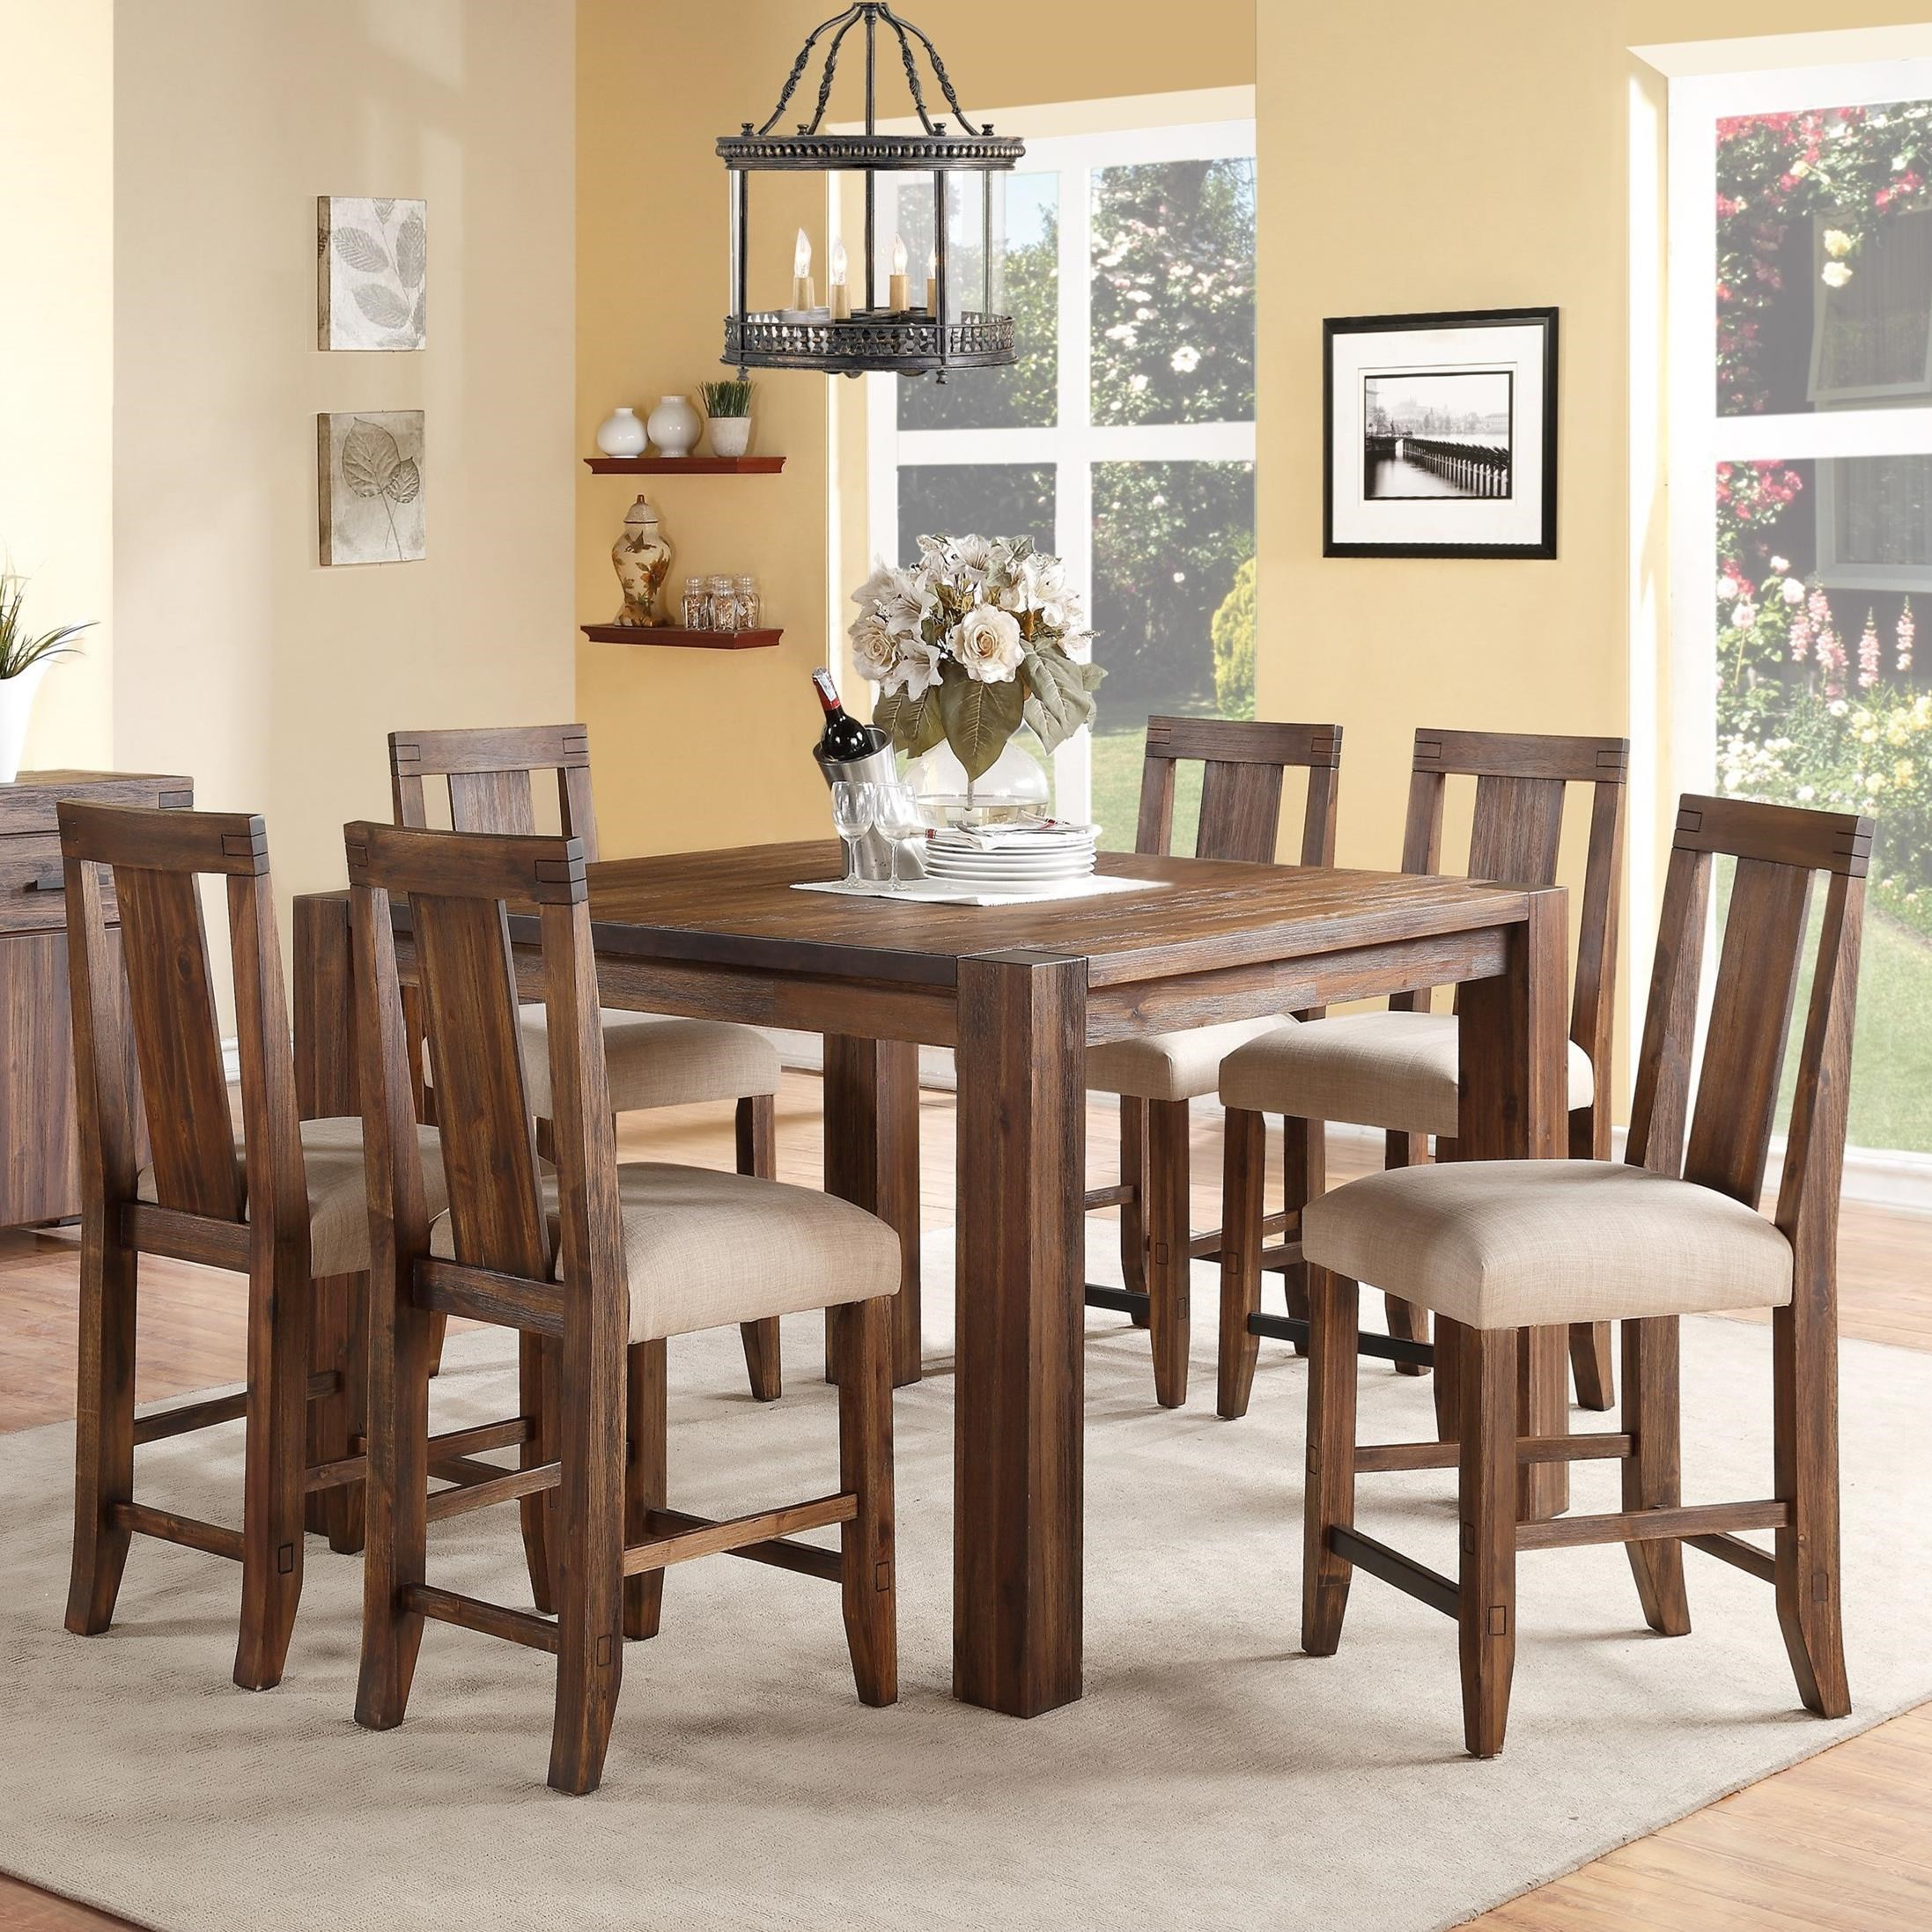 7-Piece Square Counter Table Set